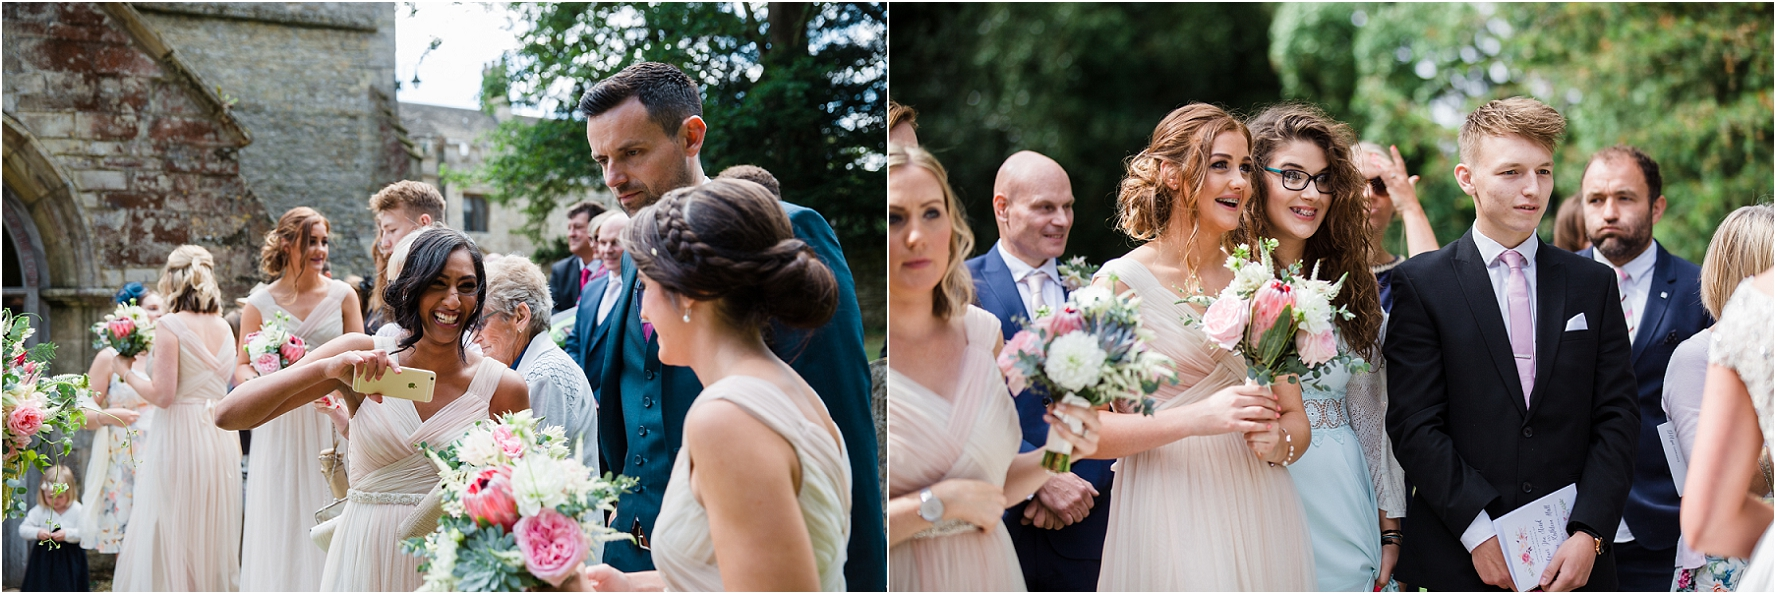 wedding-photography-irnham-hall-46